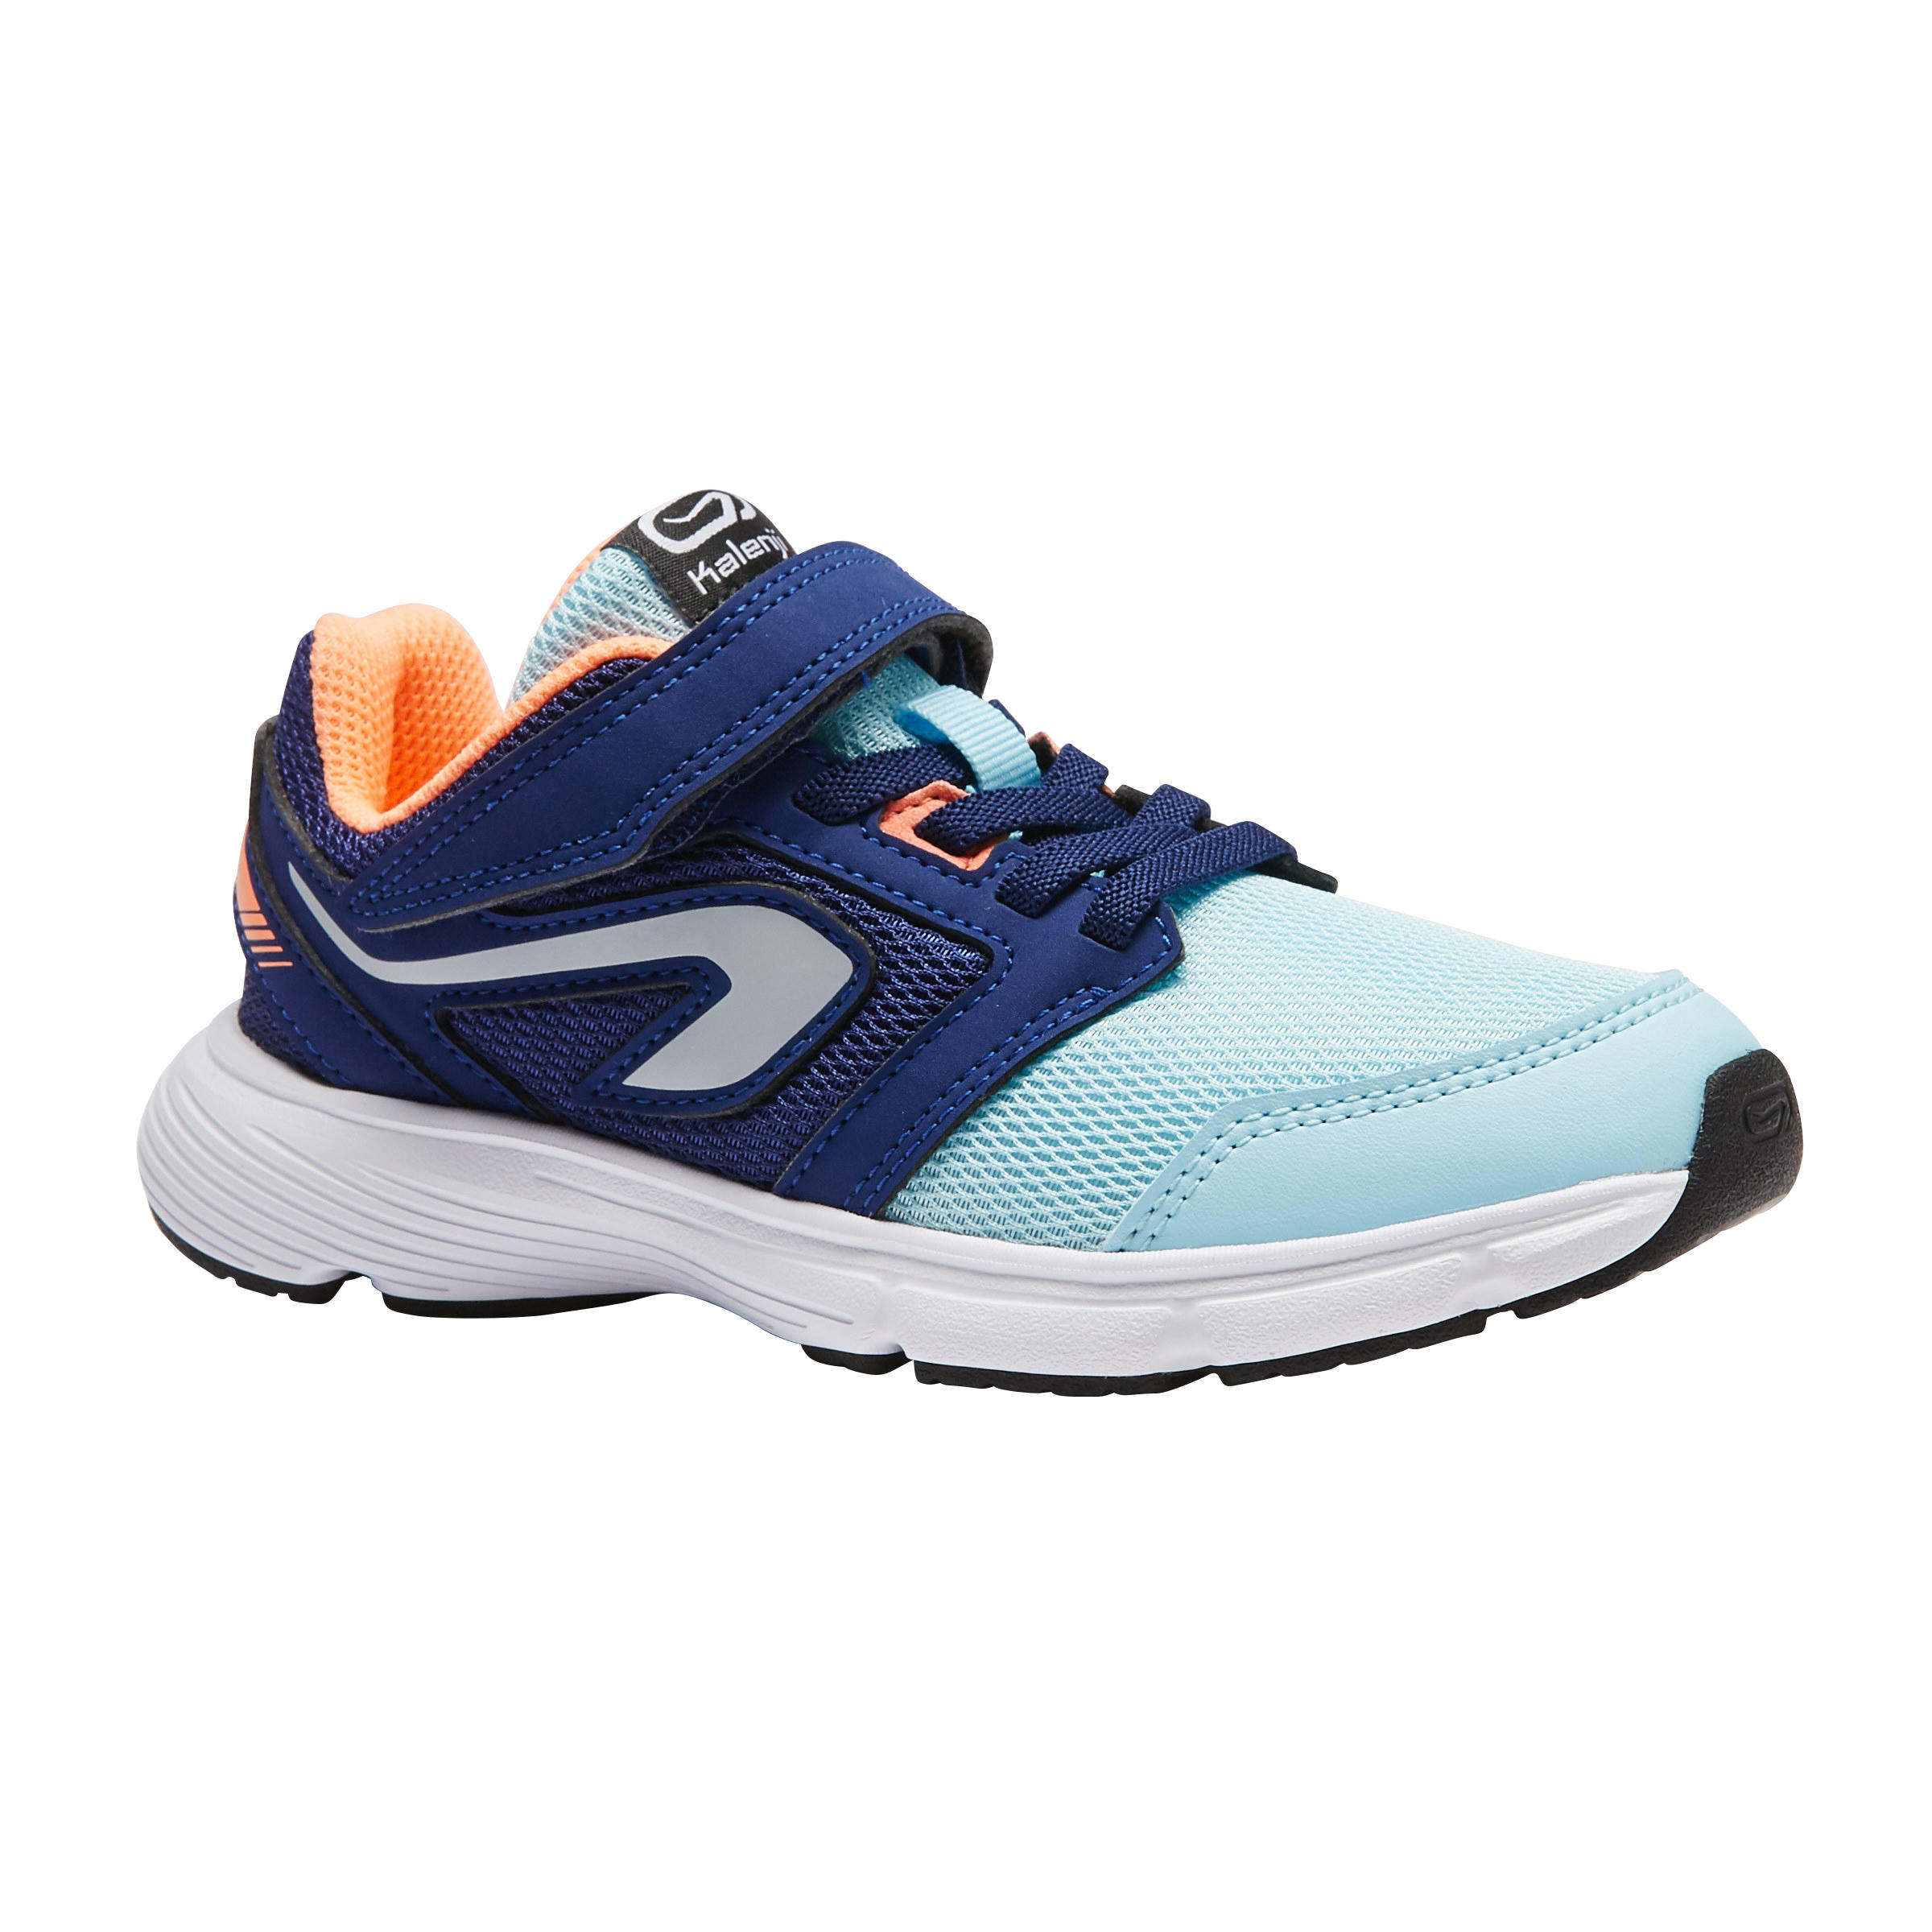 KID'S RUNNING SHOES...